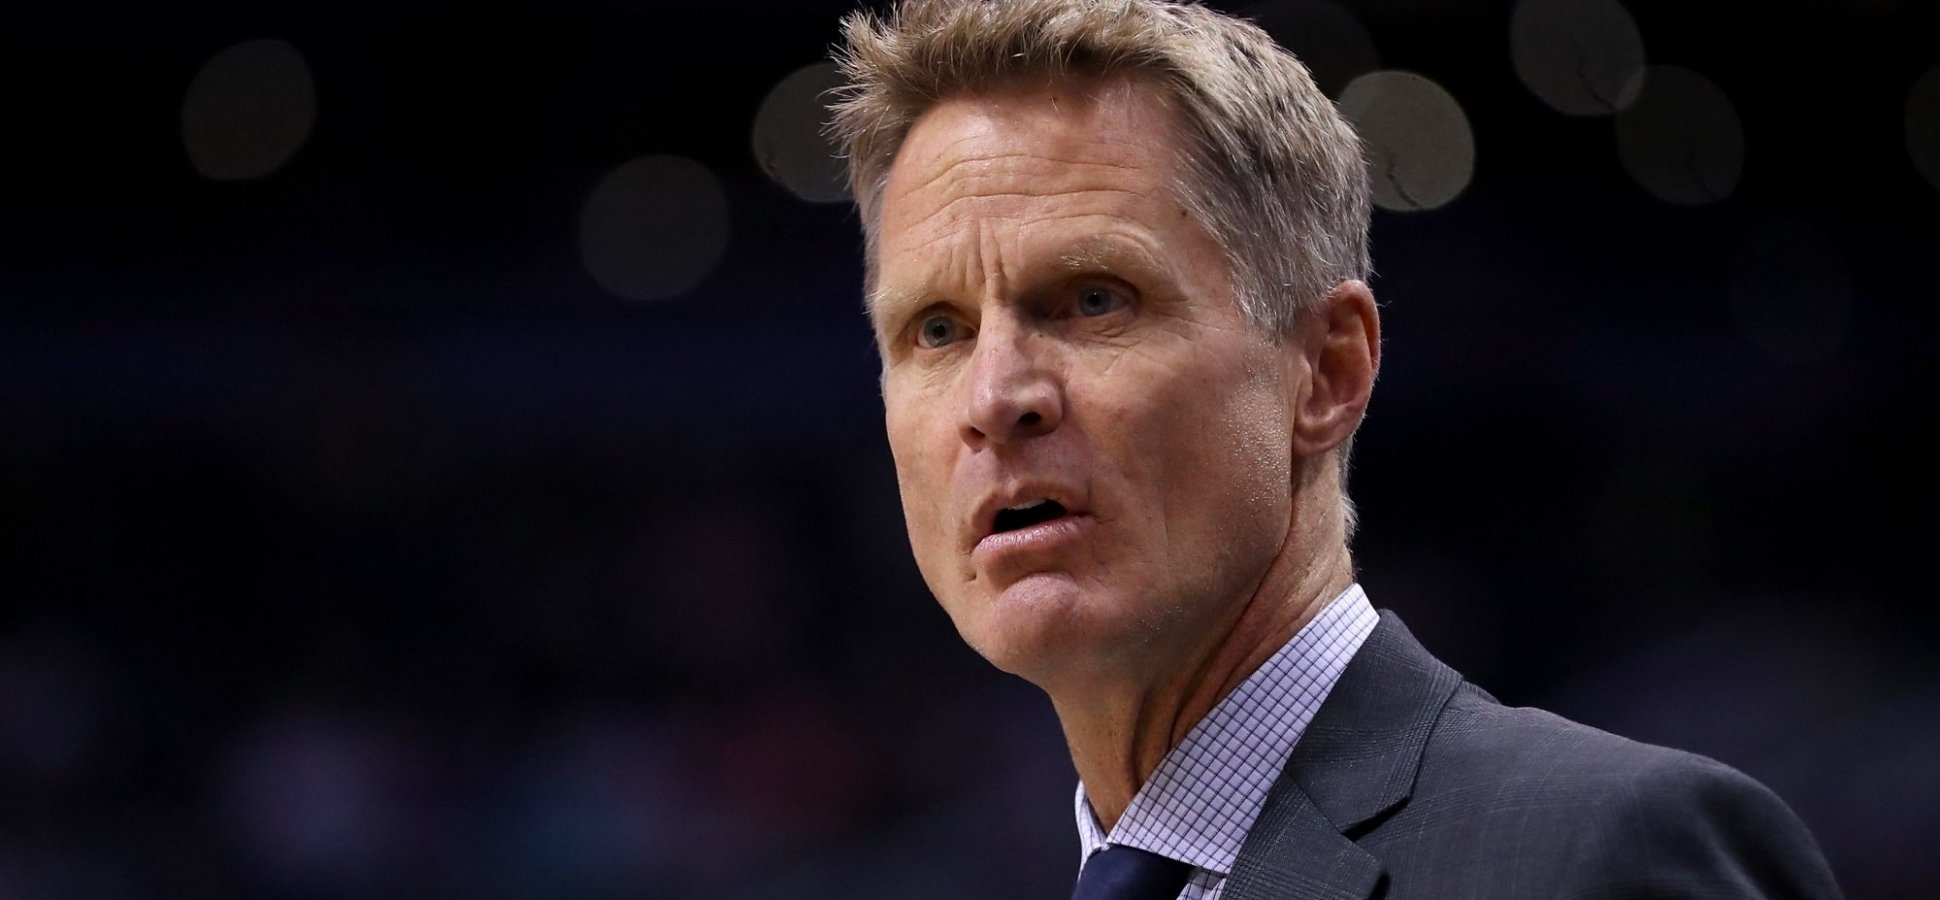 In Just a Few Words, Warriors Coach Steve Kerr Gave a Wonderful Lesson in Leadership. The Limits of Leadership, That Is